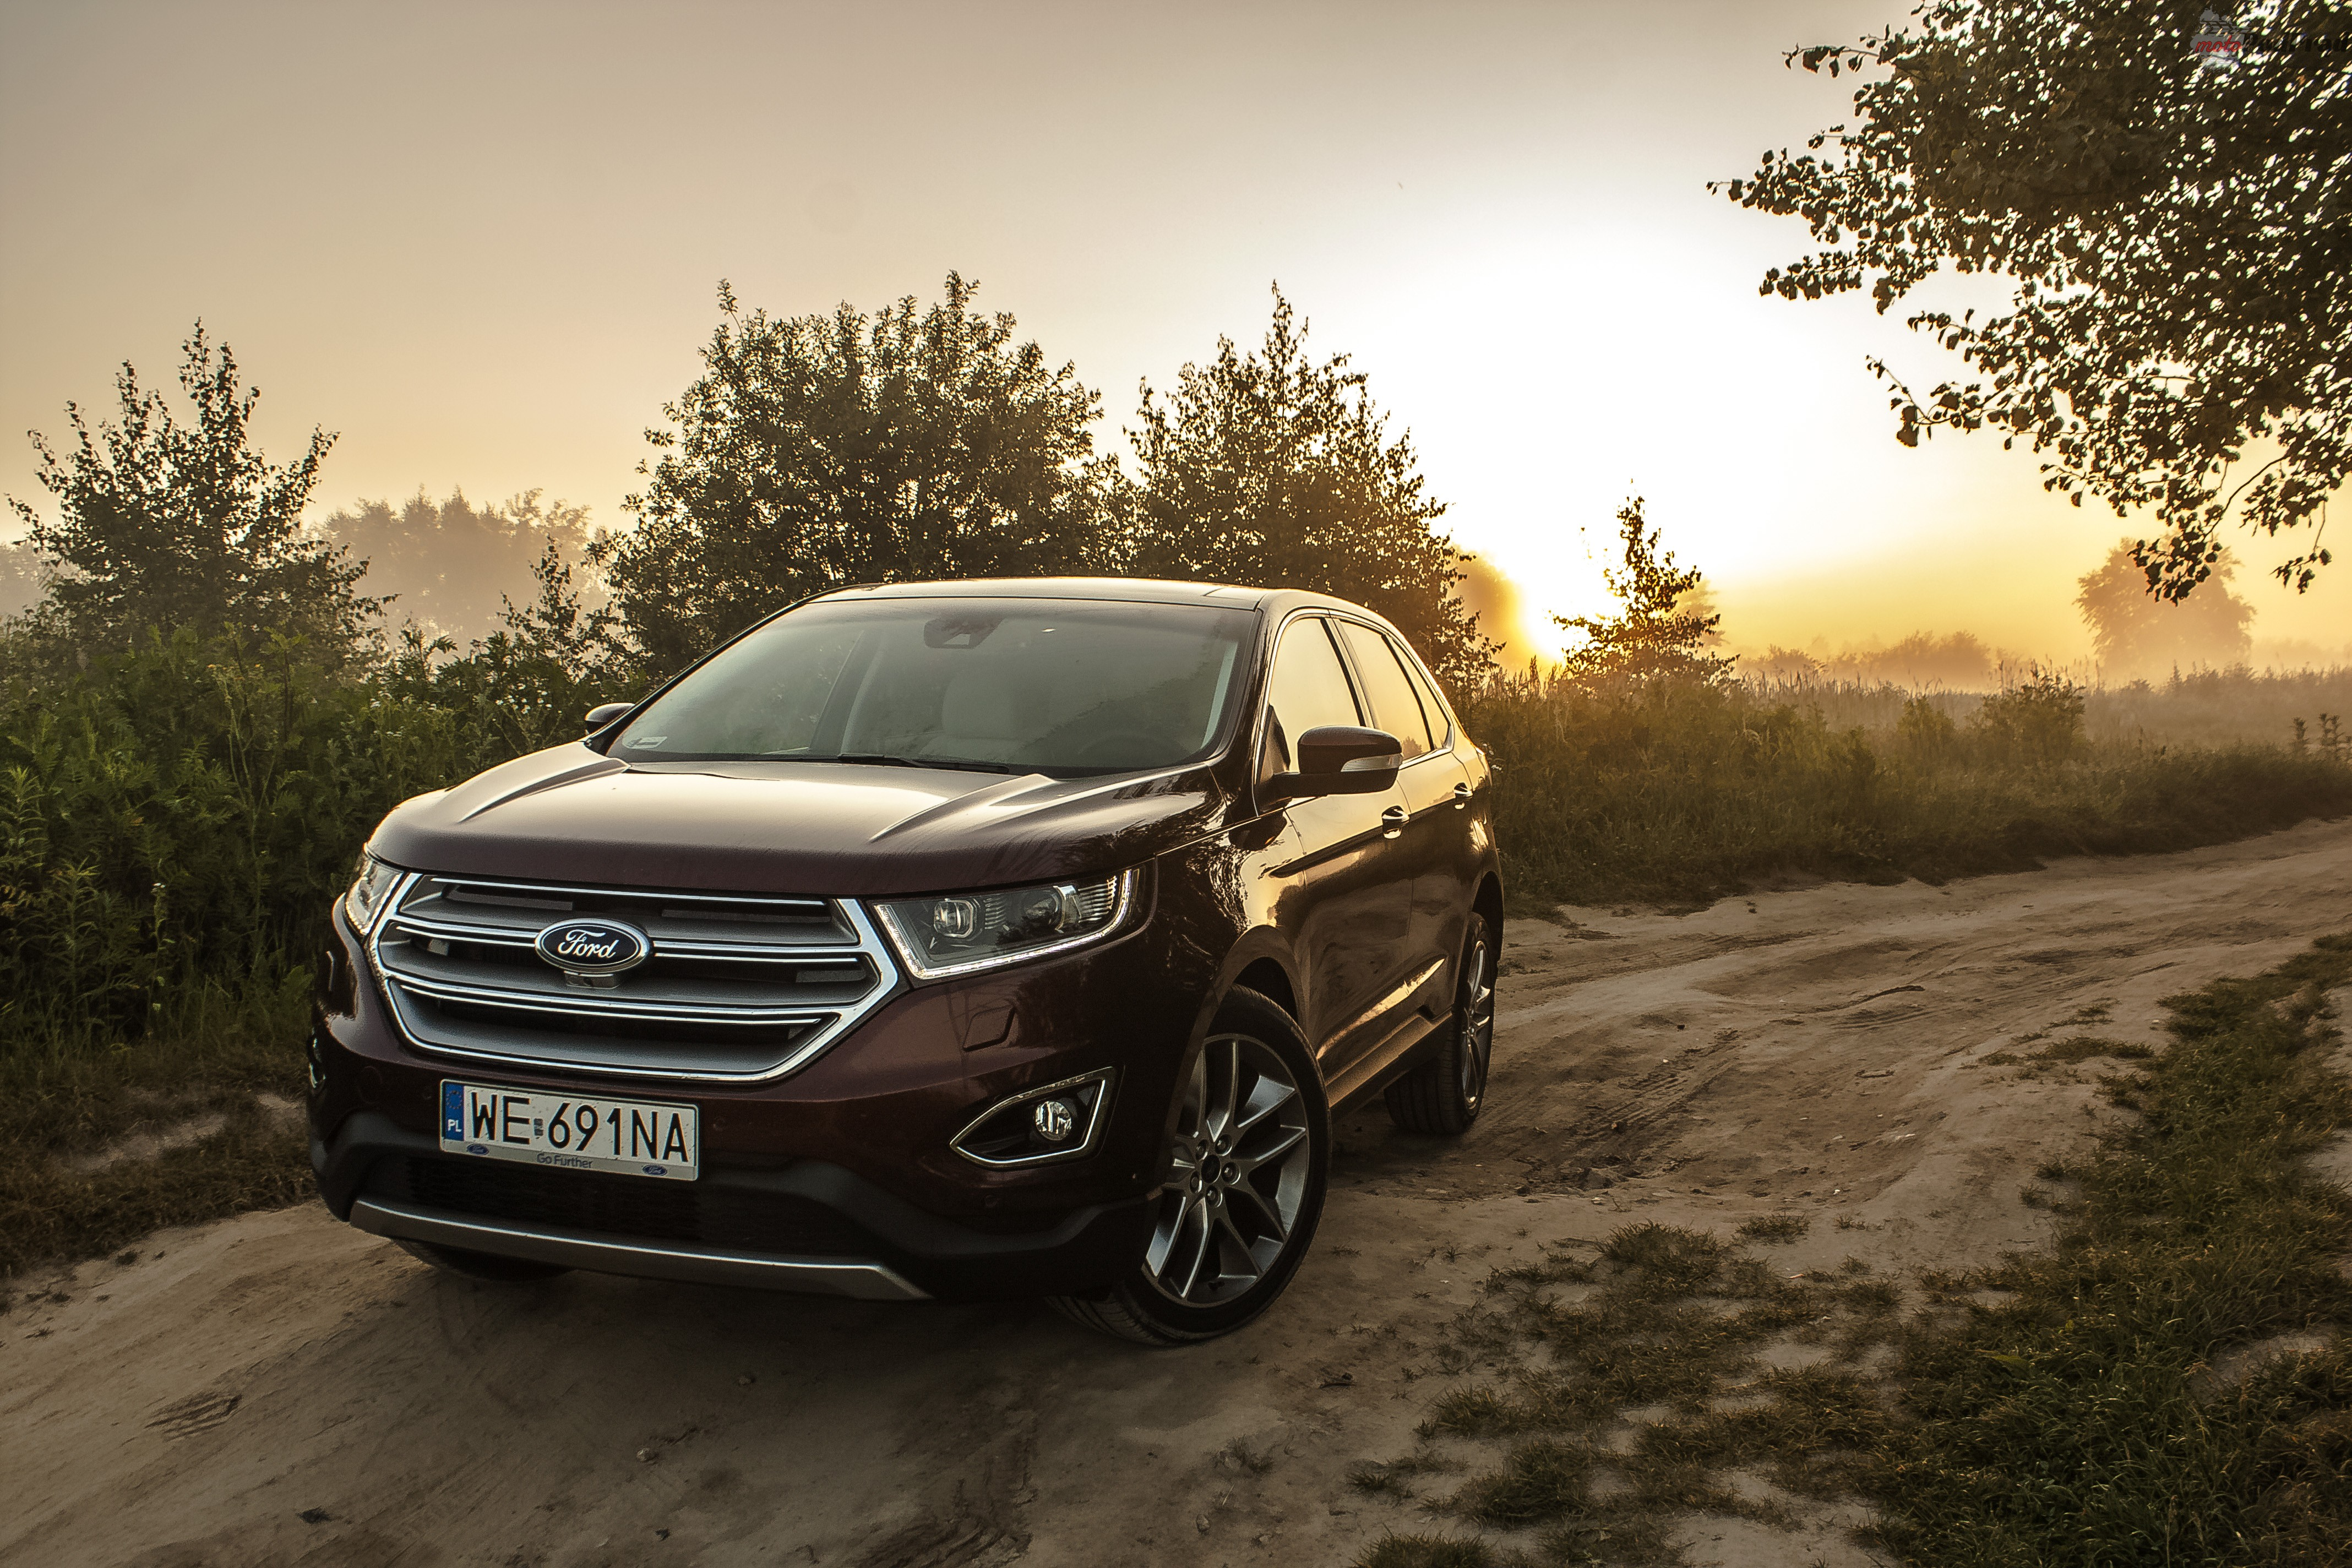 Ford Edge 2 Test: Ford Edge 2.0 TDCi   jazda na krawędzi